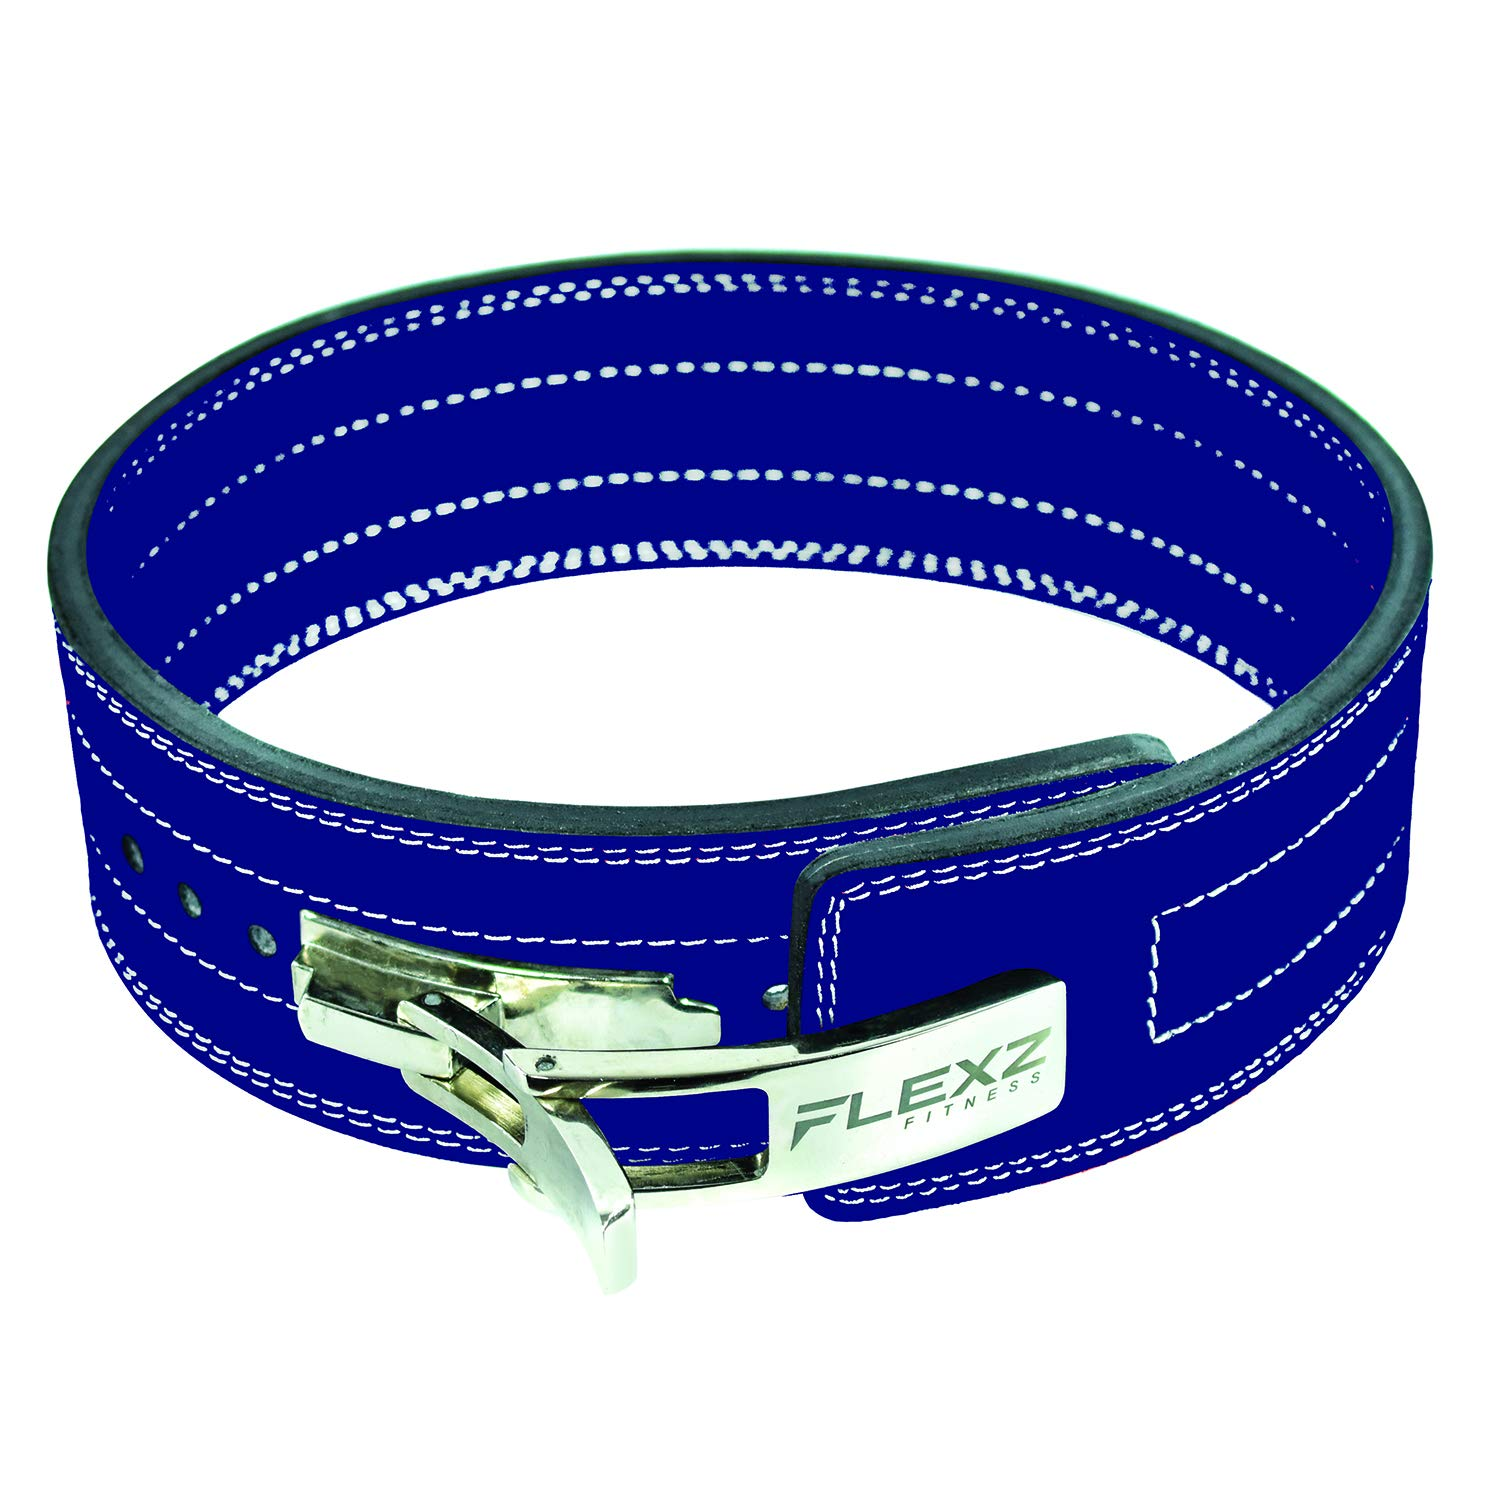 Flexz Fitness Lever Buckle Powerlifting Belt 10mm Weight Lifting Blue Small